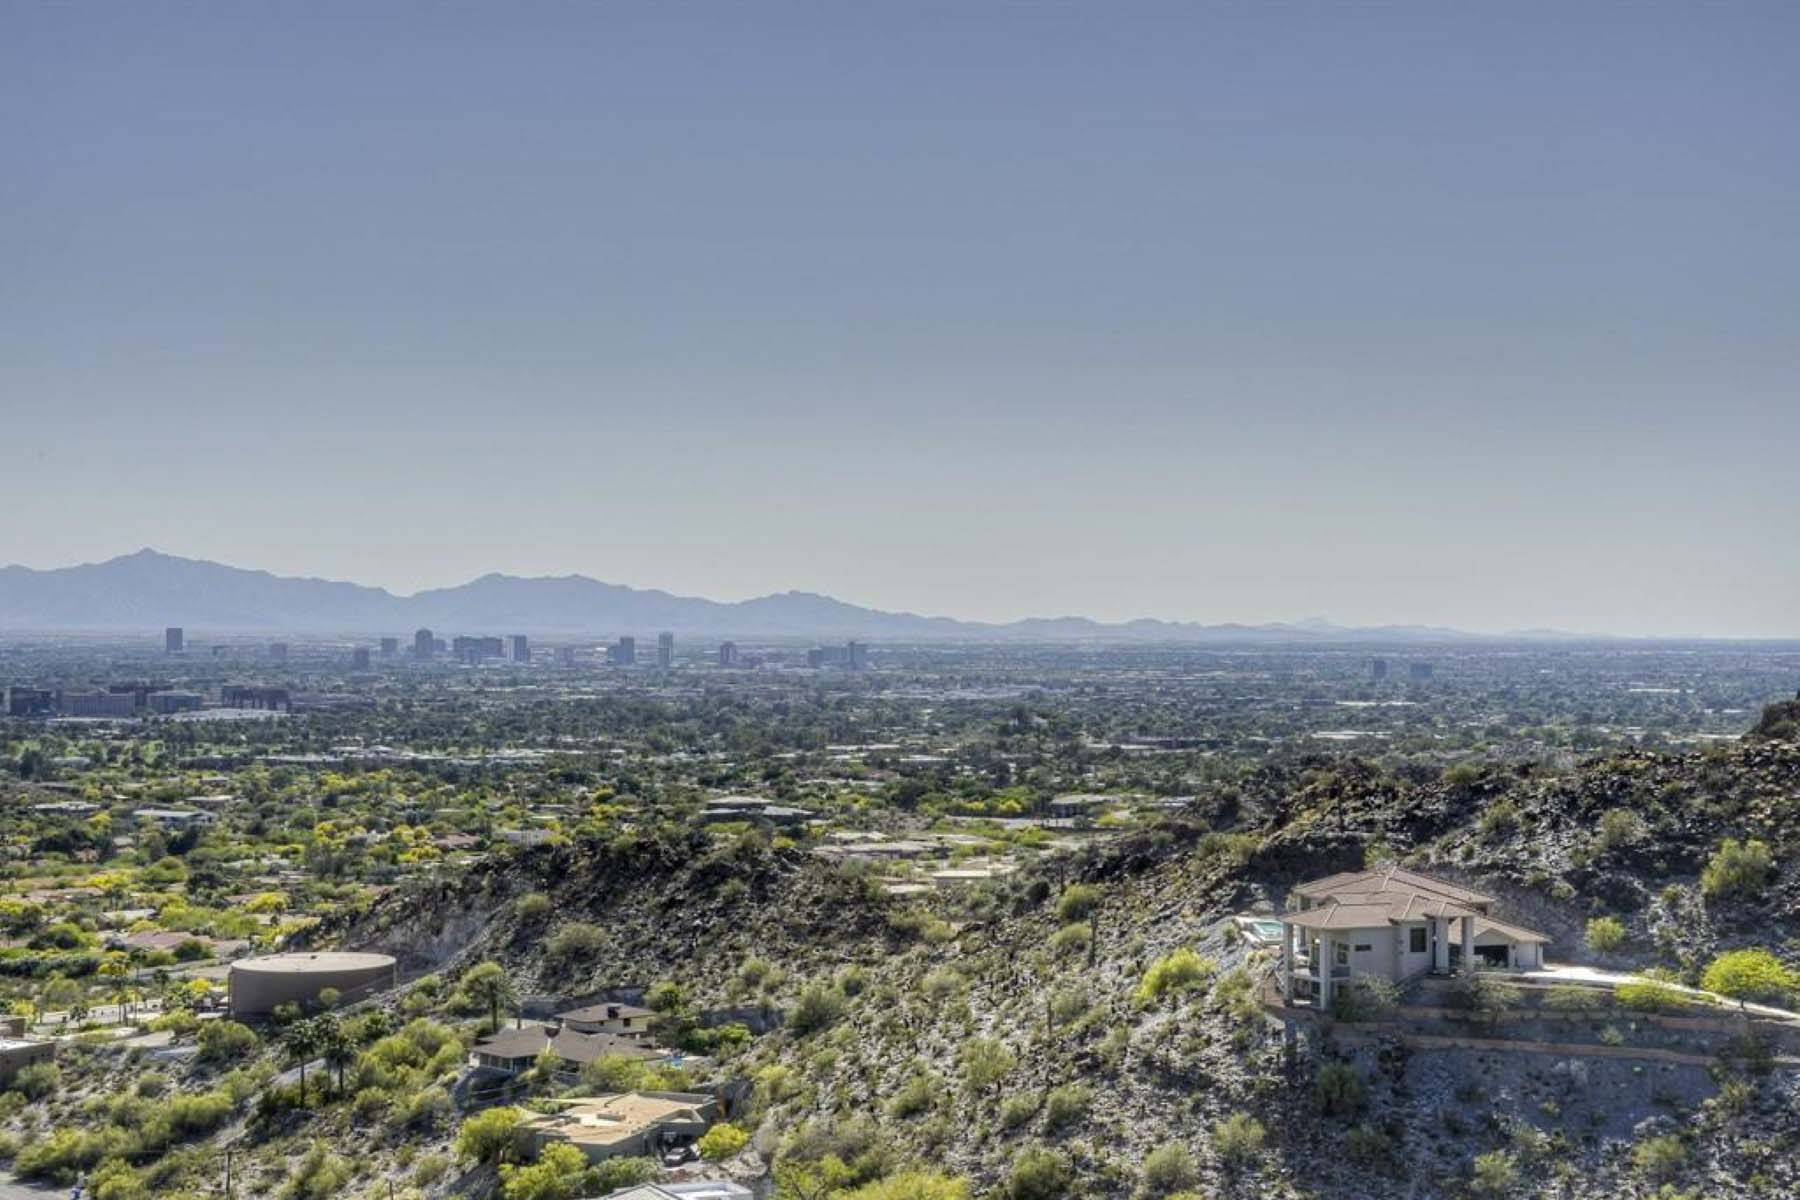 Terreno por un Venta en King of the Mountain with panoramic views of Downtown Phoenix. 6721 N 36TH ST 23 Phoenix, Arizona 85018 Estados Unidos